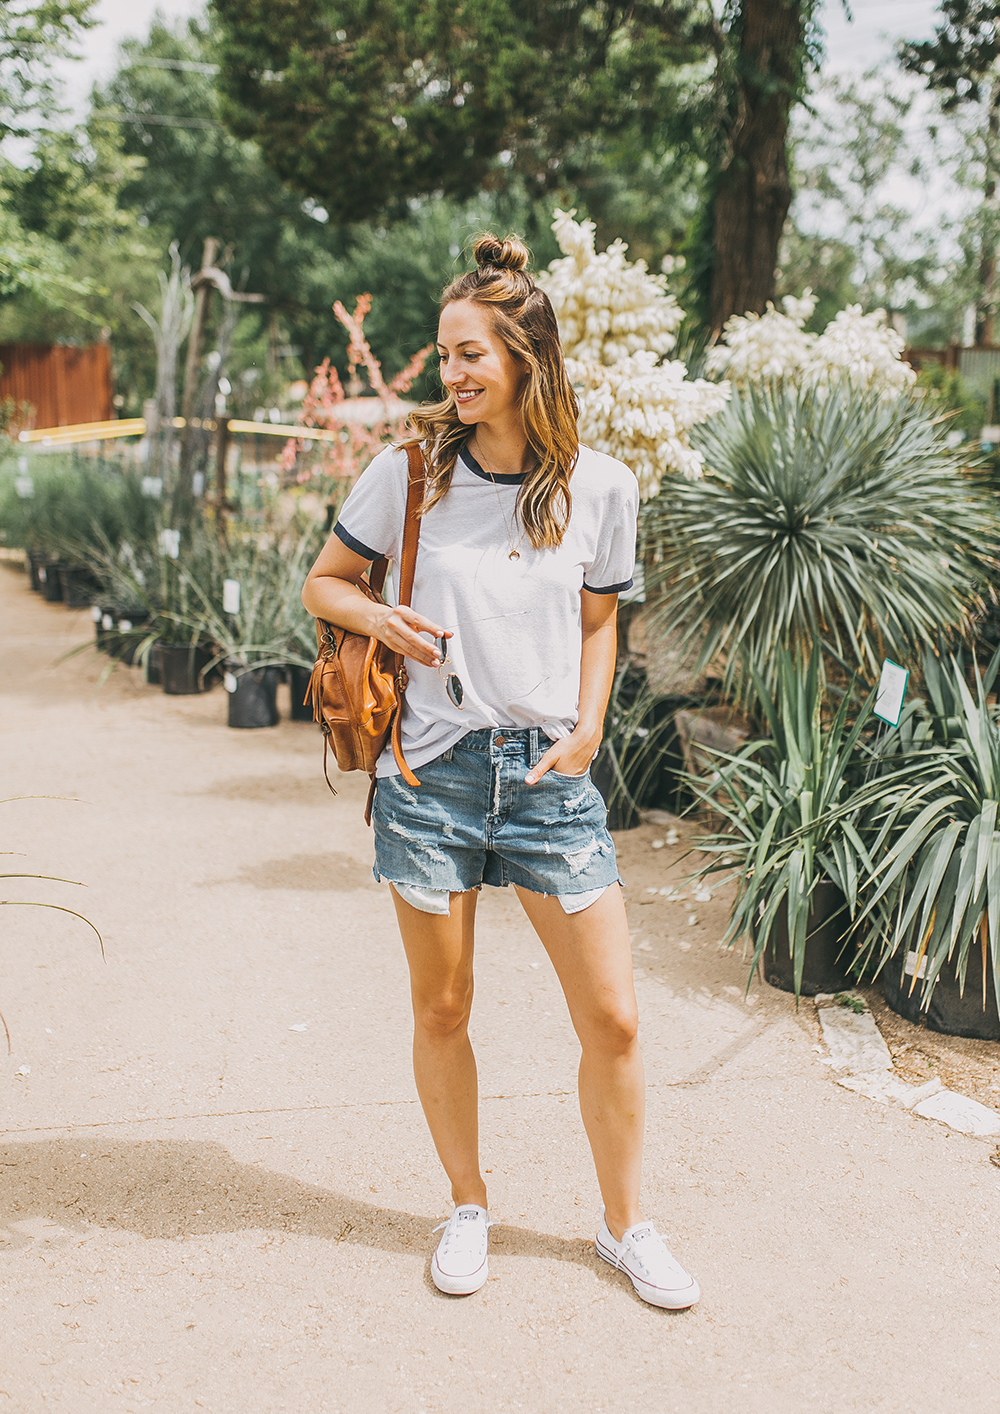 livvyland-blog-olivia-watson-austin-texas-fashion-blogger-natural-gardener-tee-boyfriend-shorts-denim-cutoffs-easy-summer-outfit-idea-treasure-bond-nordstrom-1